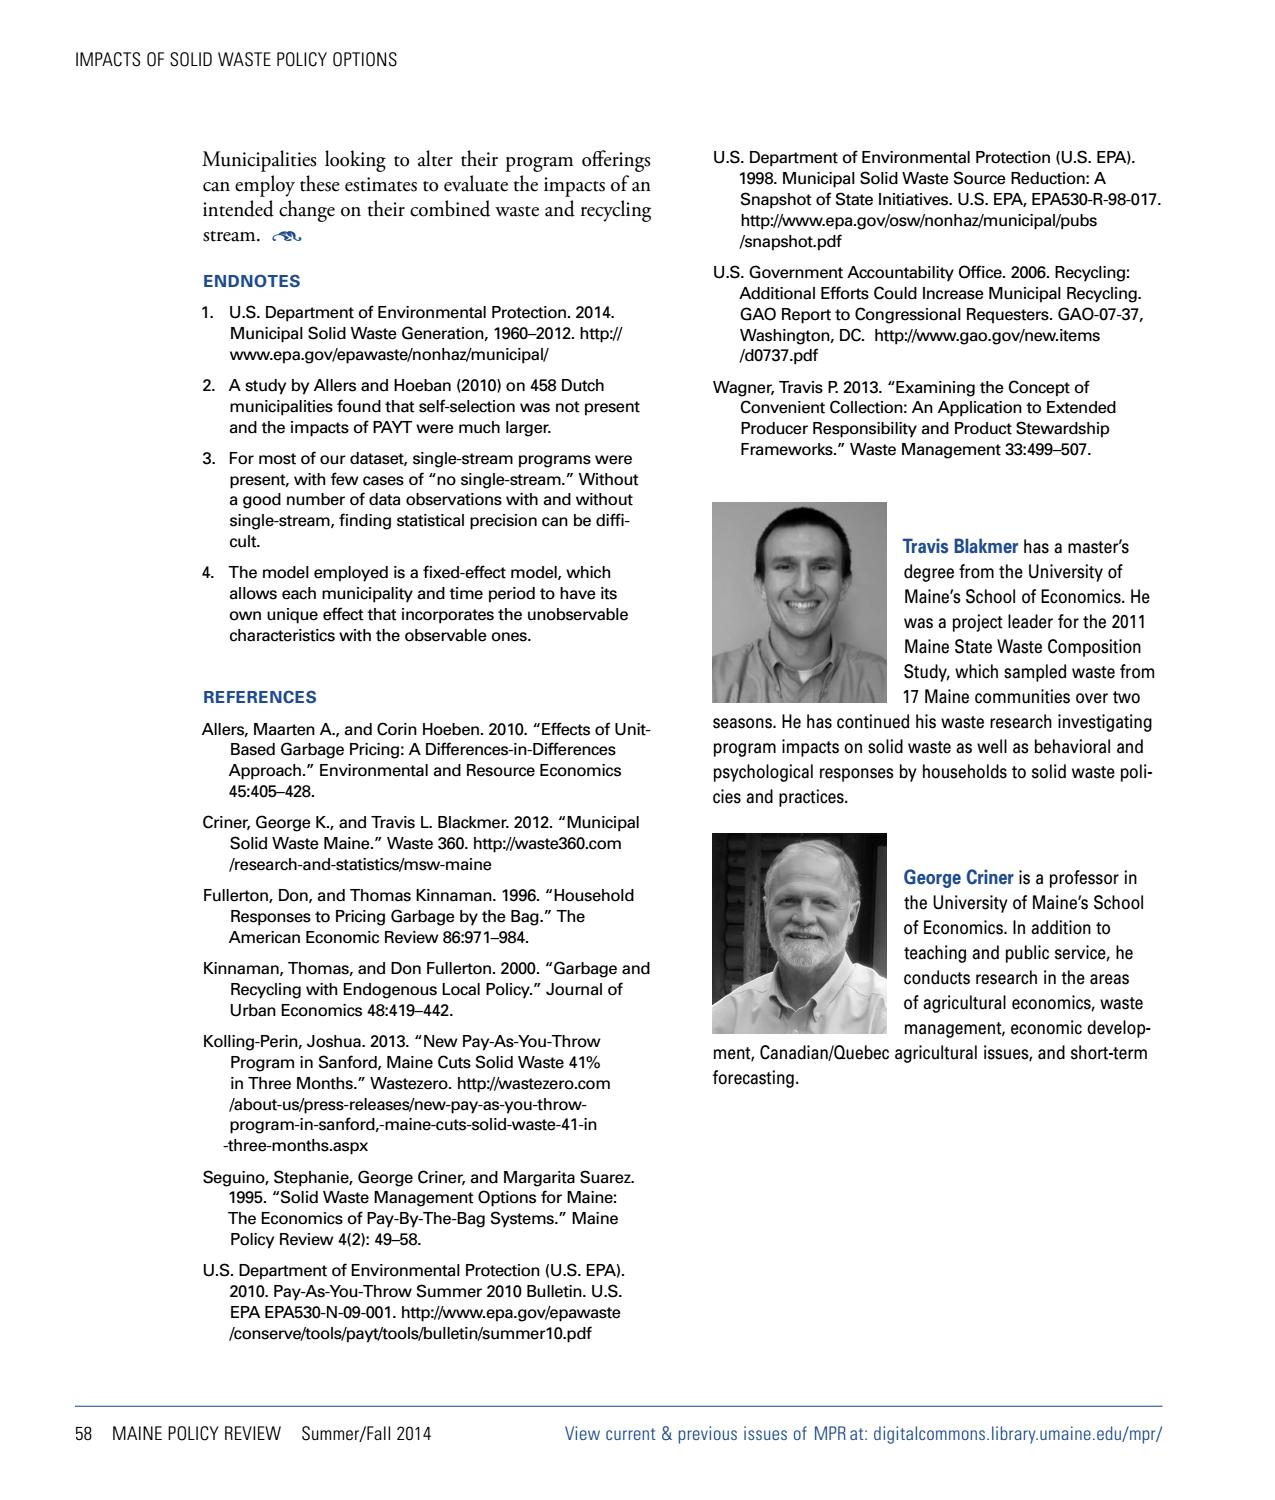 Maine Policy Review Summer/Fall 2014 by University of Maine - issuu